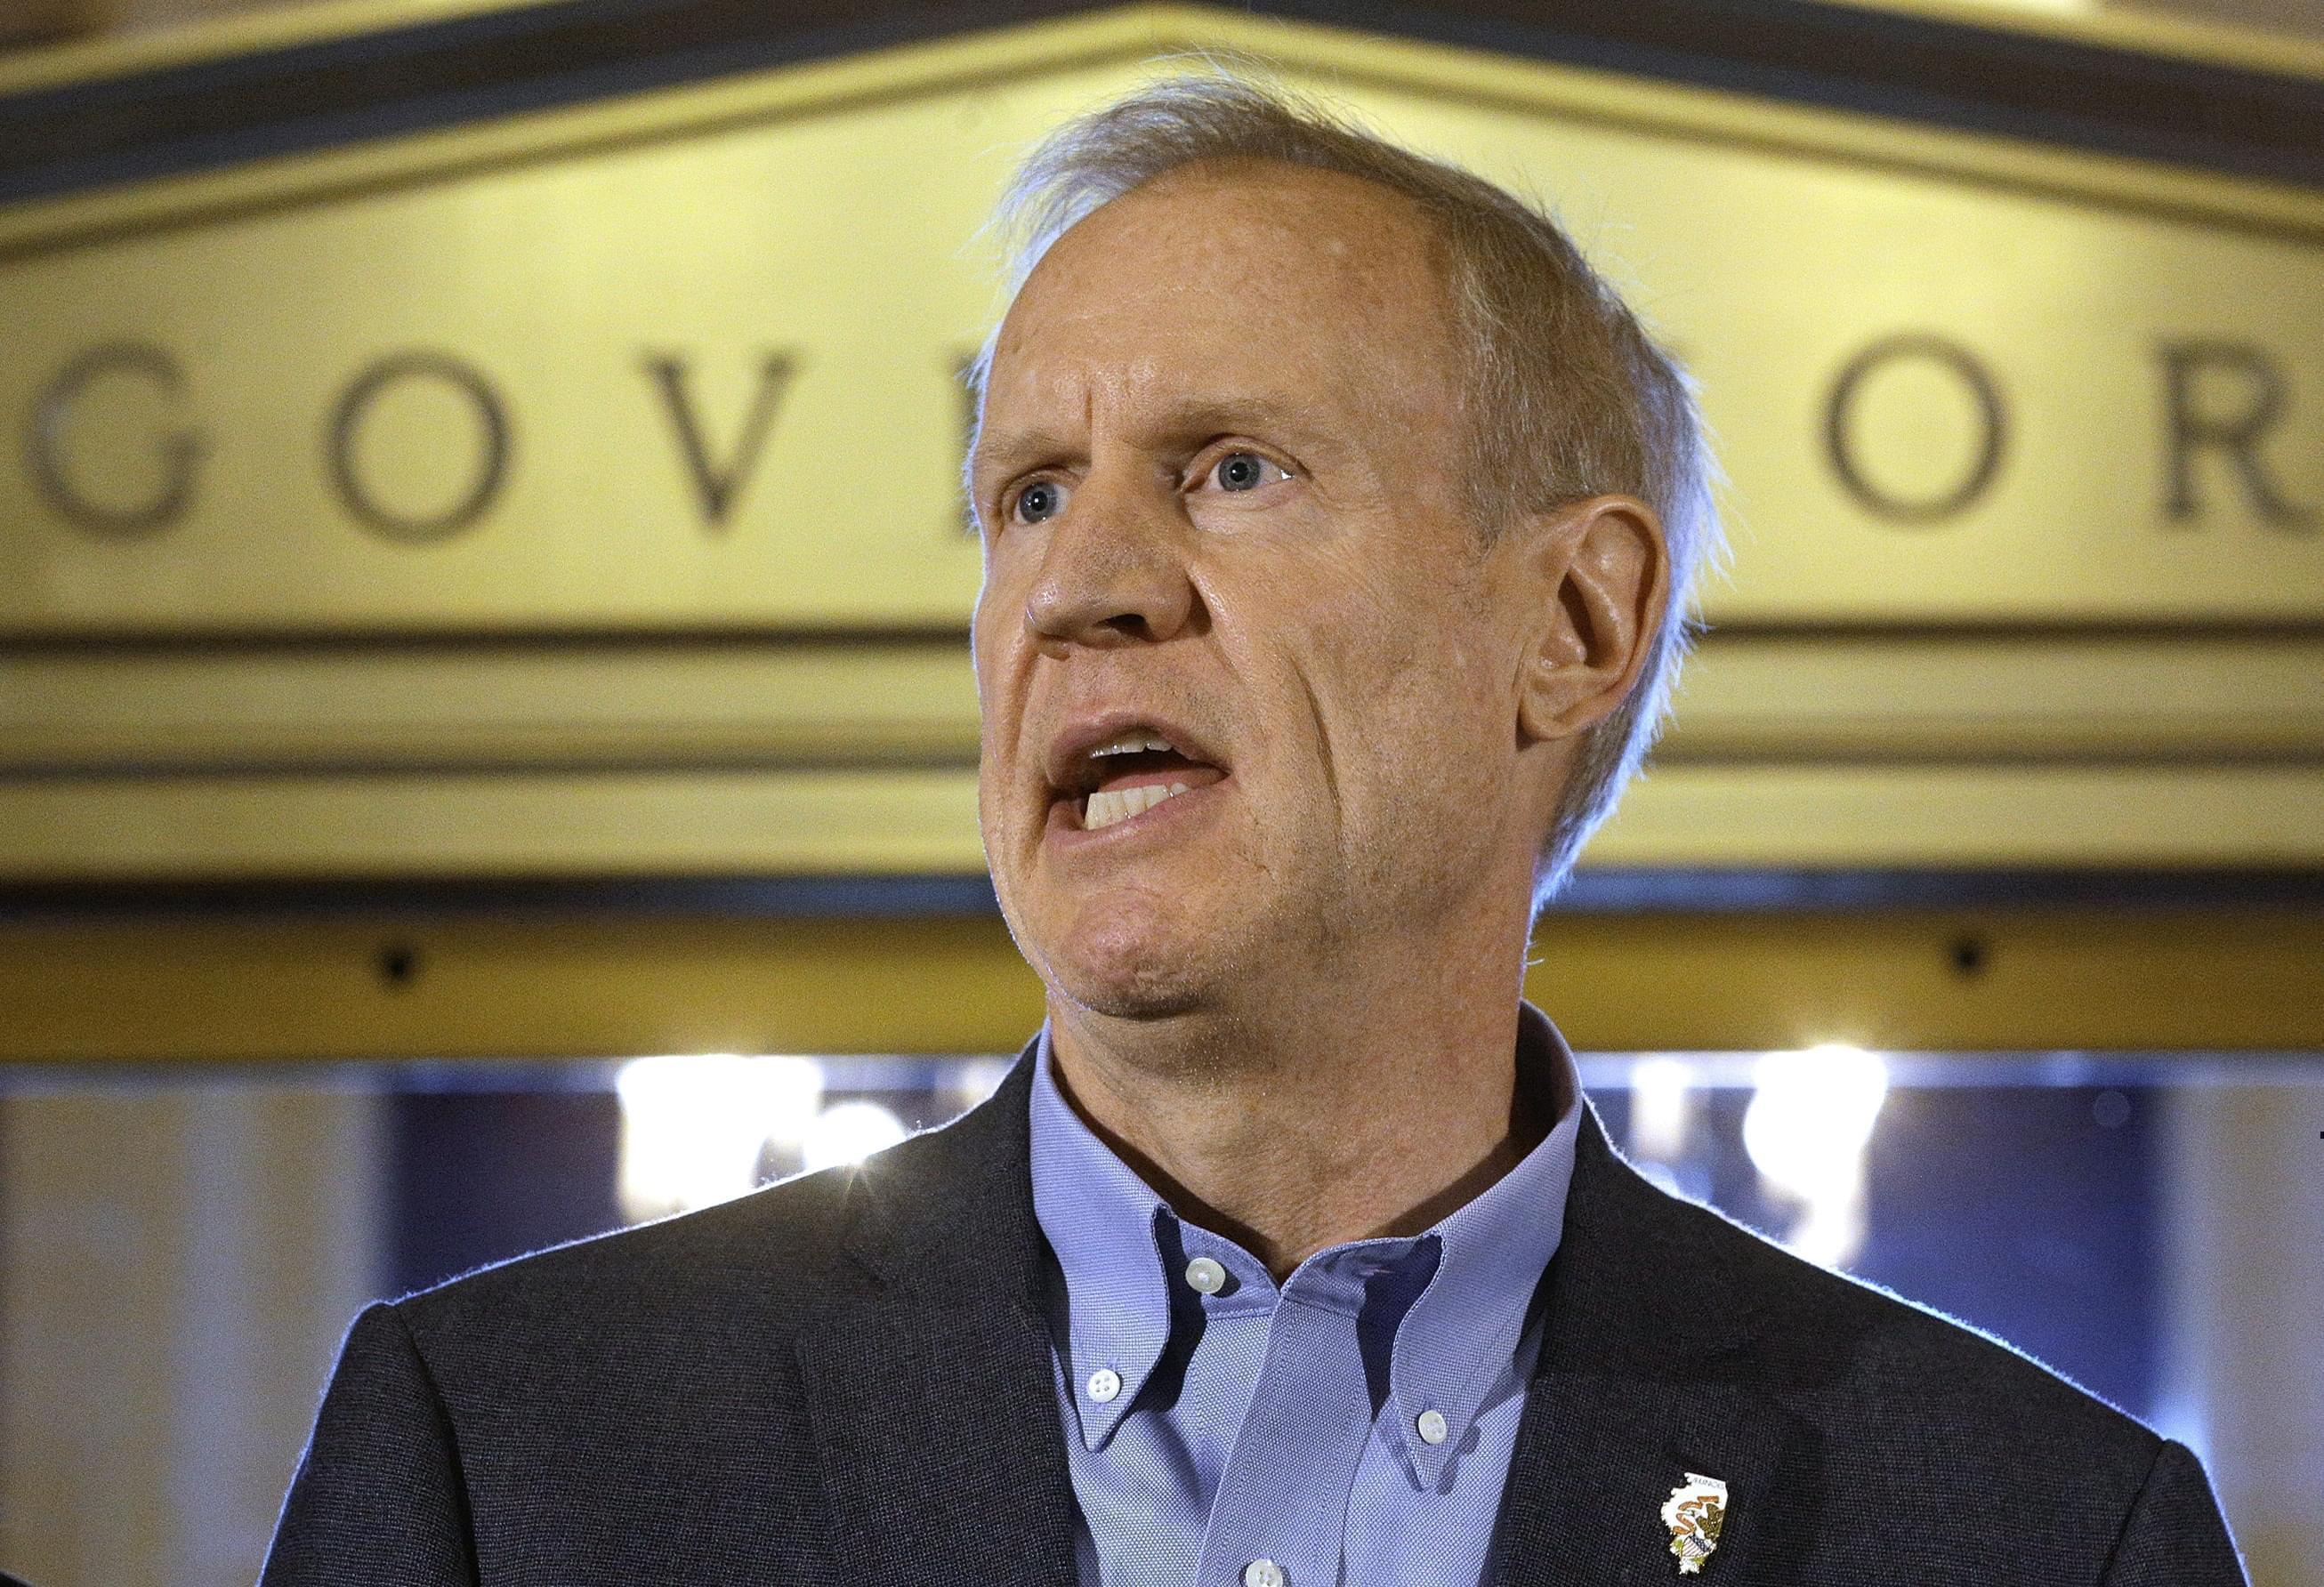 In this Thursday, June 30, 2016 photo, Illinois Gov. Bruce Rauner speaks to reporters in front of his office at the Illinois State Capitol in Springfield, Ill., after lawmakers passed a stop gap budget.